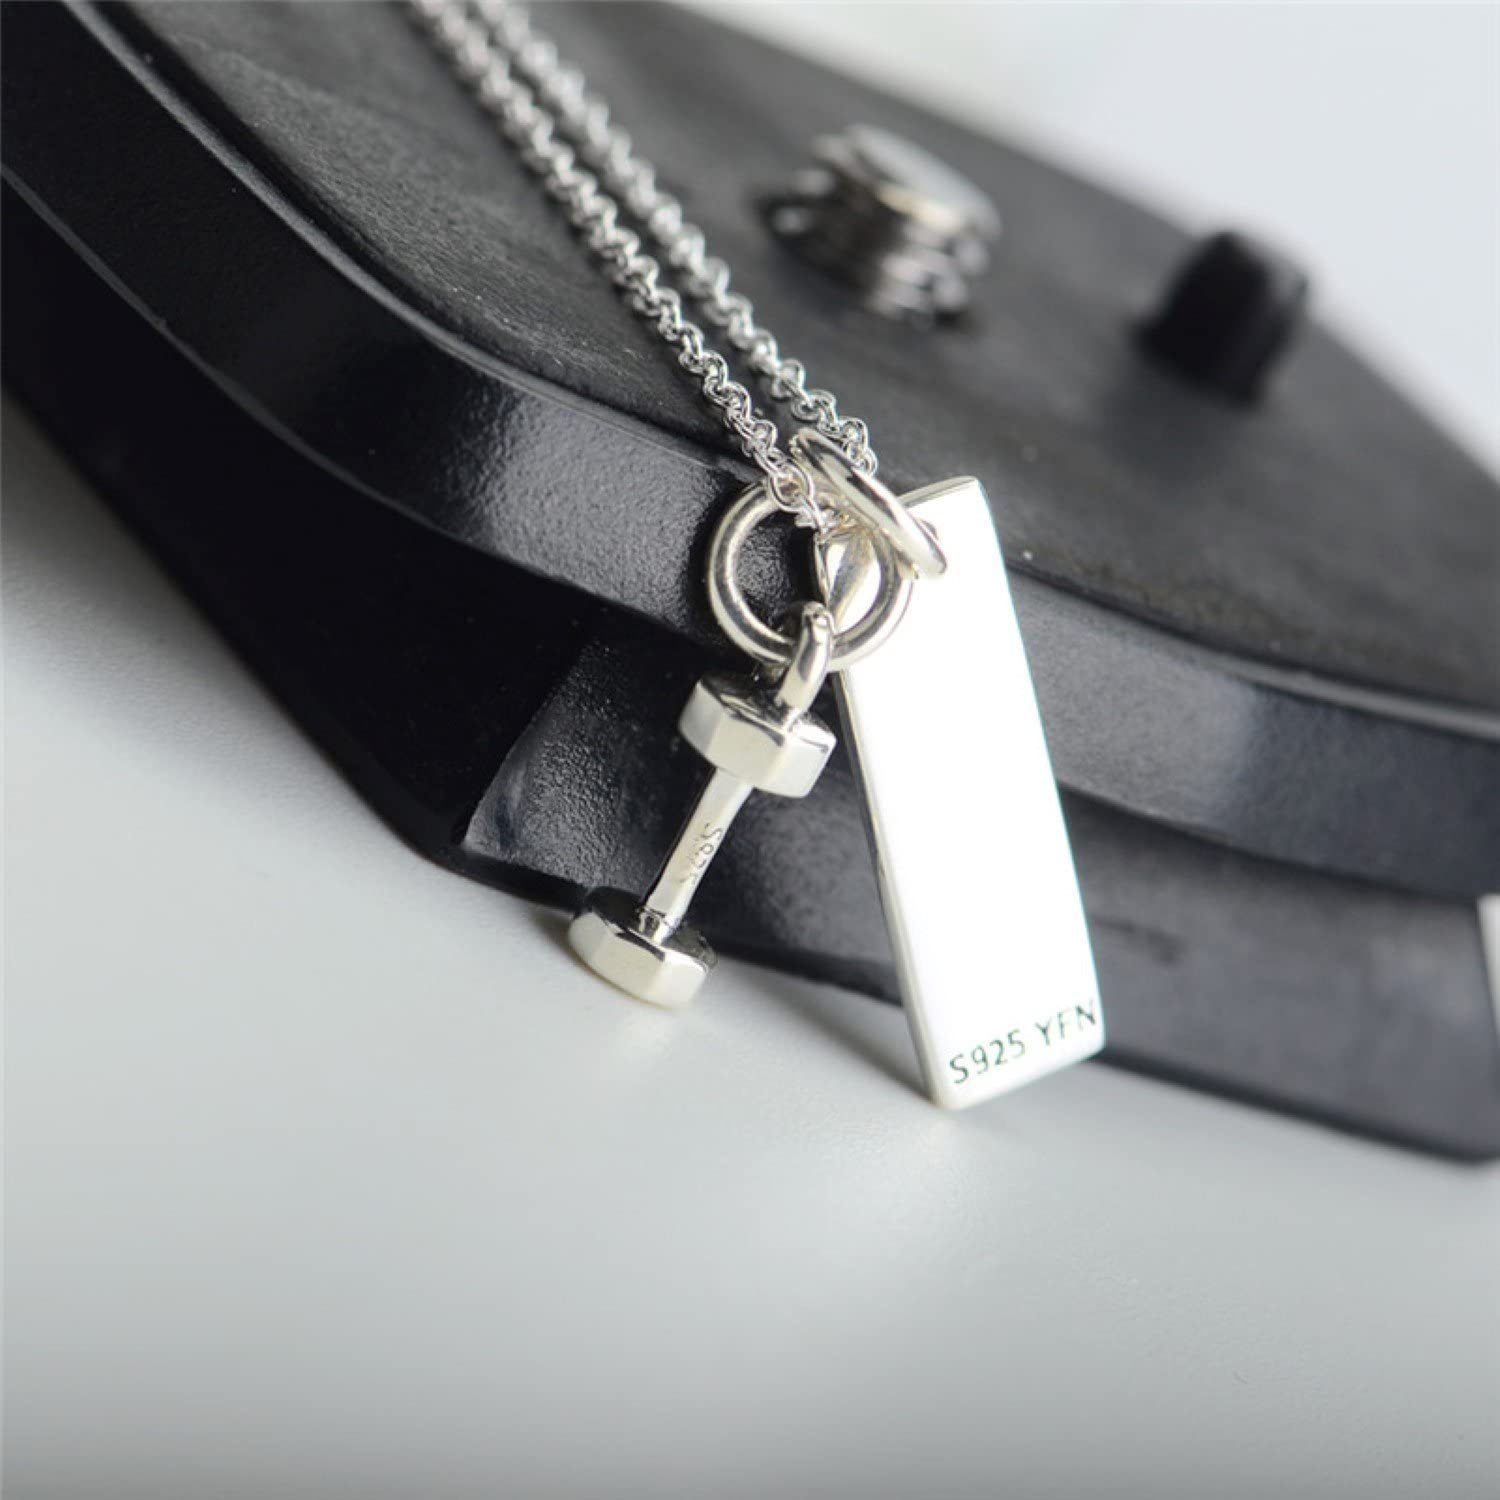 CS-DB Fitness Tag and Dumbbell Two Tone Top Stylish Silver Necklaces Pendants